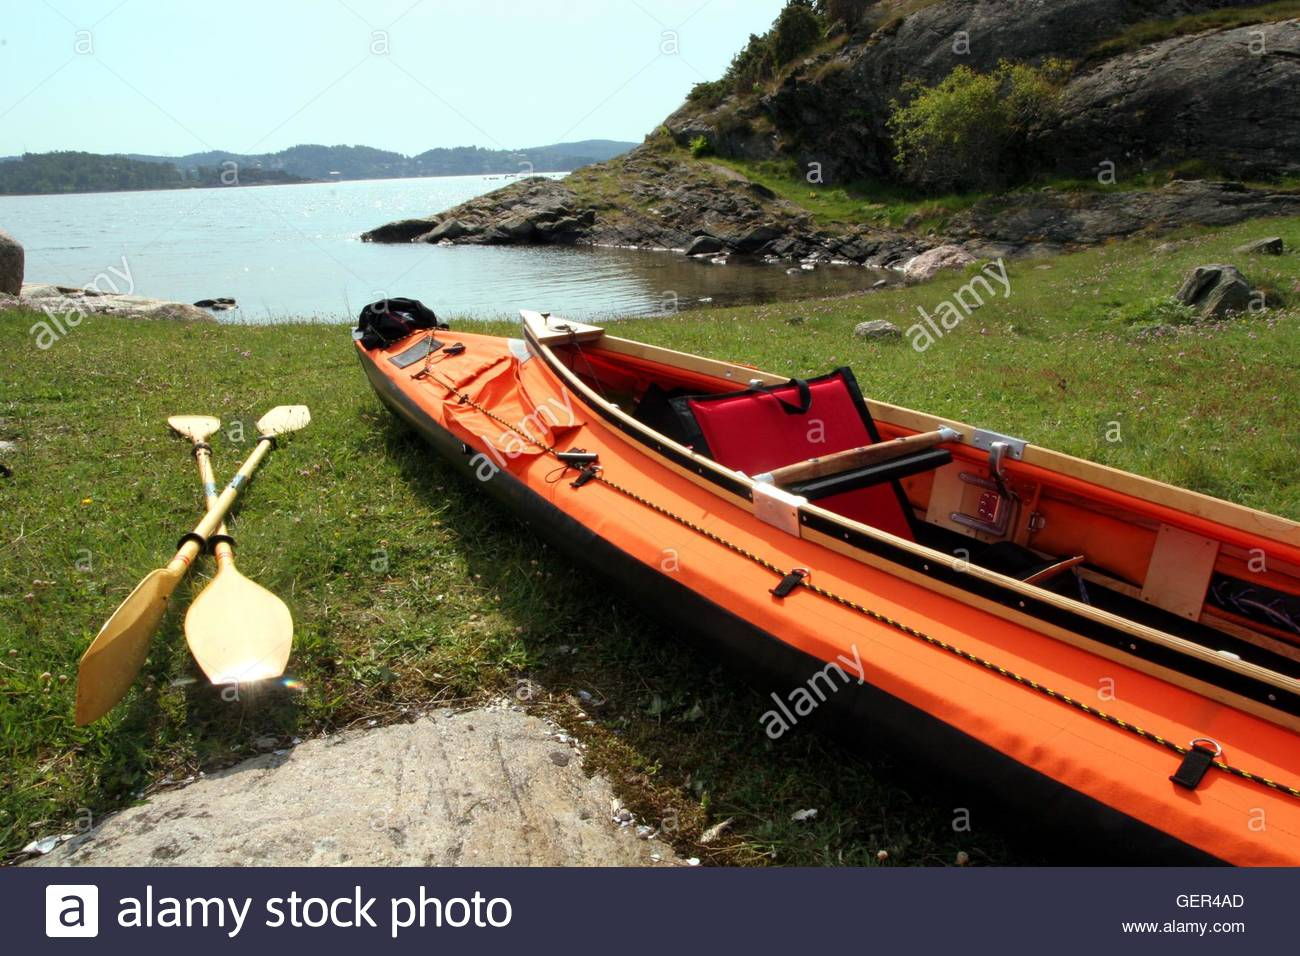 Sea kayak (faltboat) on a beach in Scandinavia